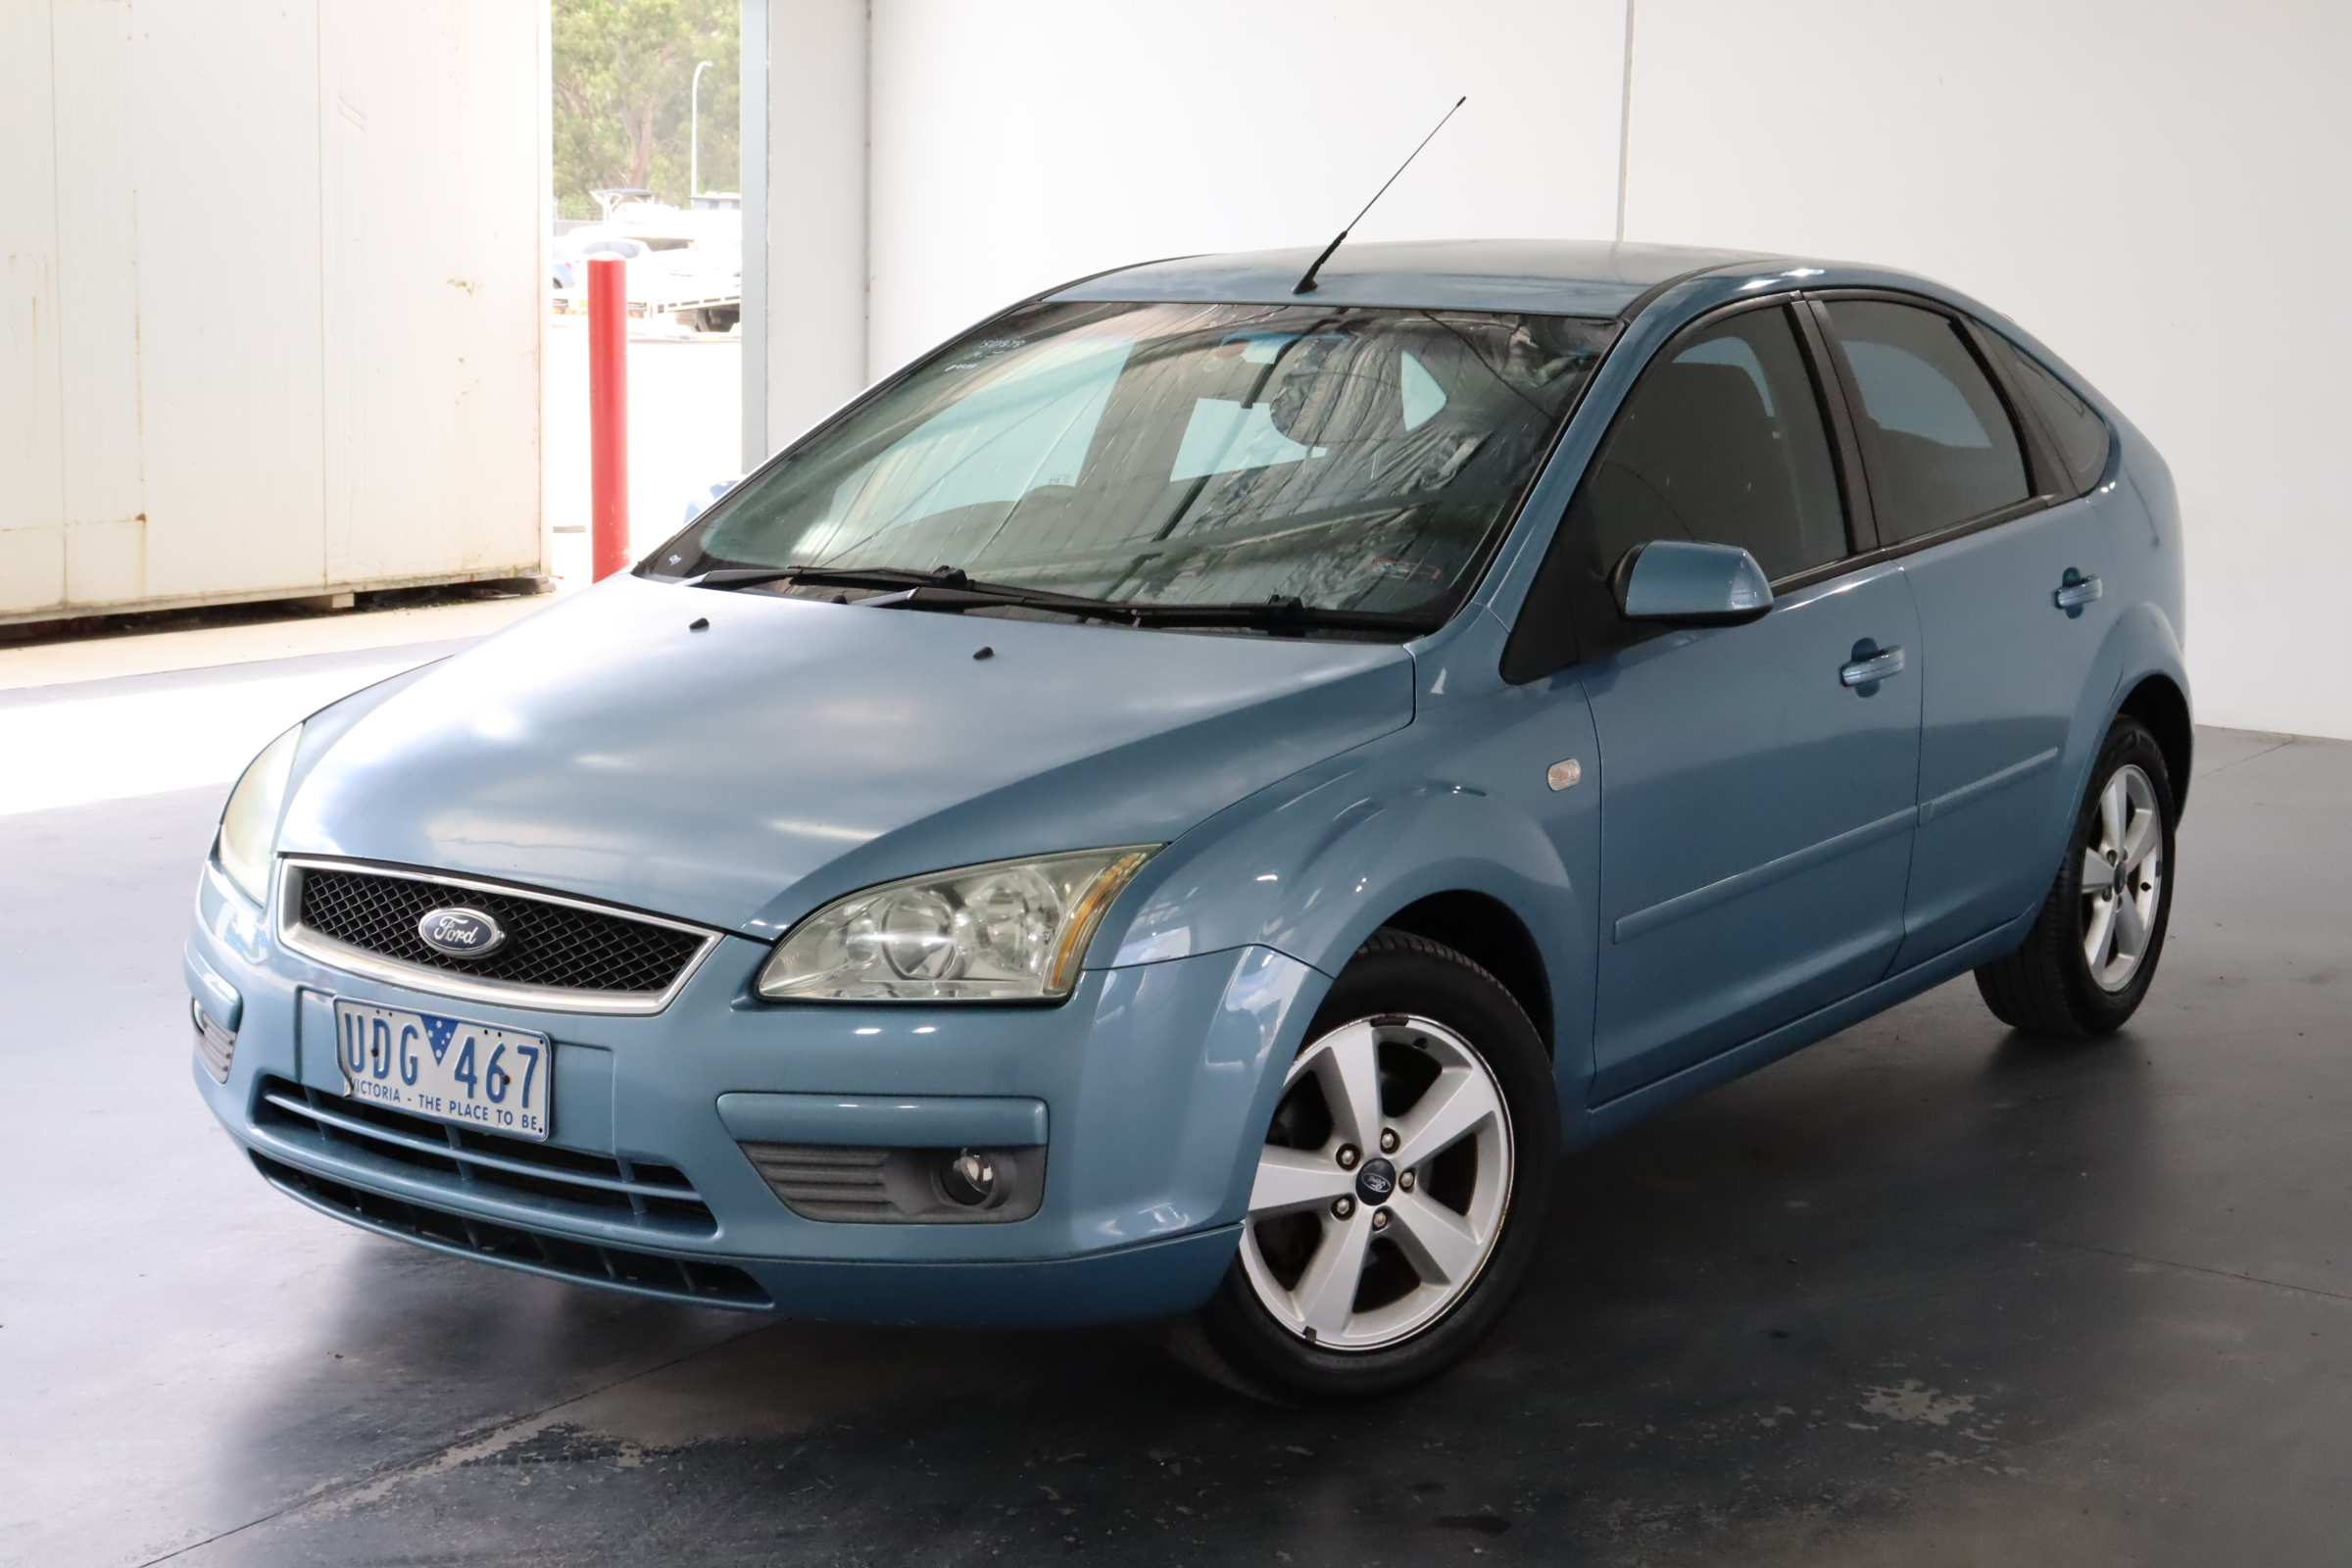 2006 Ford Focus LX LS Automatic Hatchback